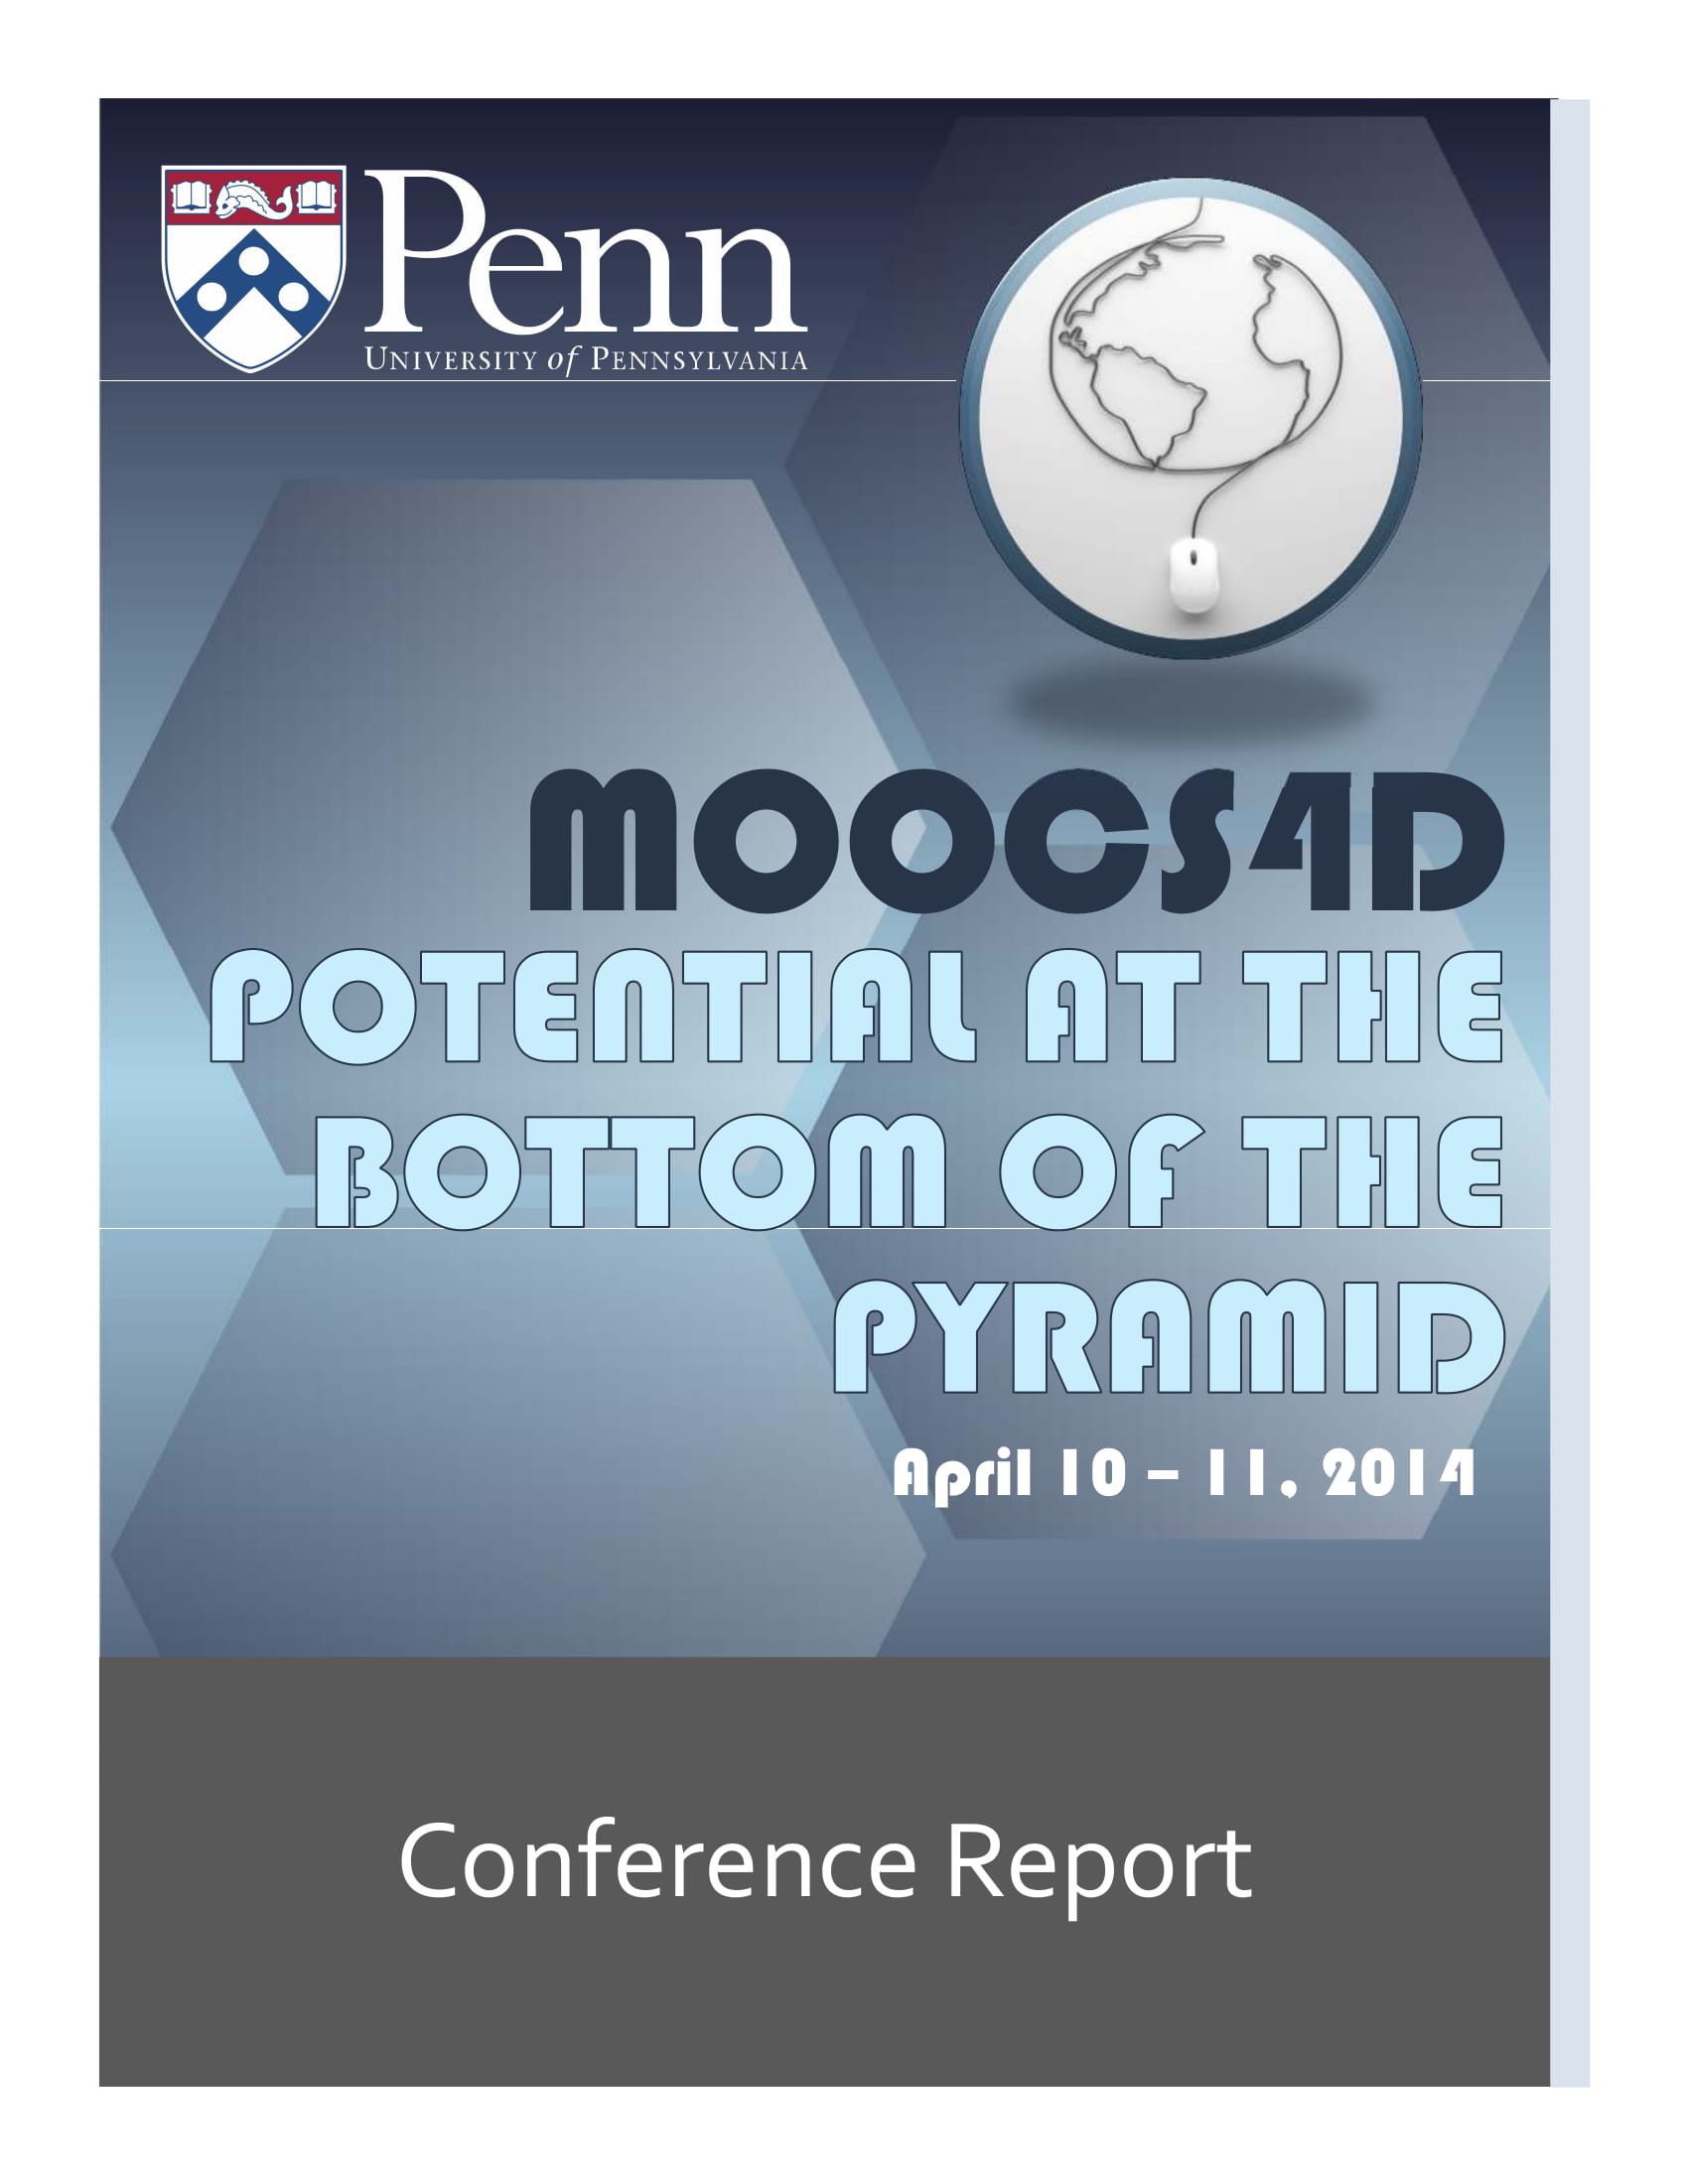 conference report example